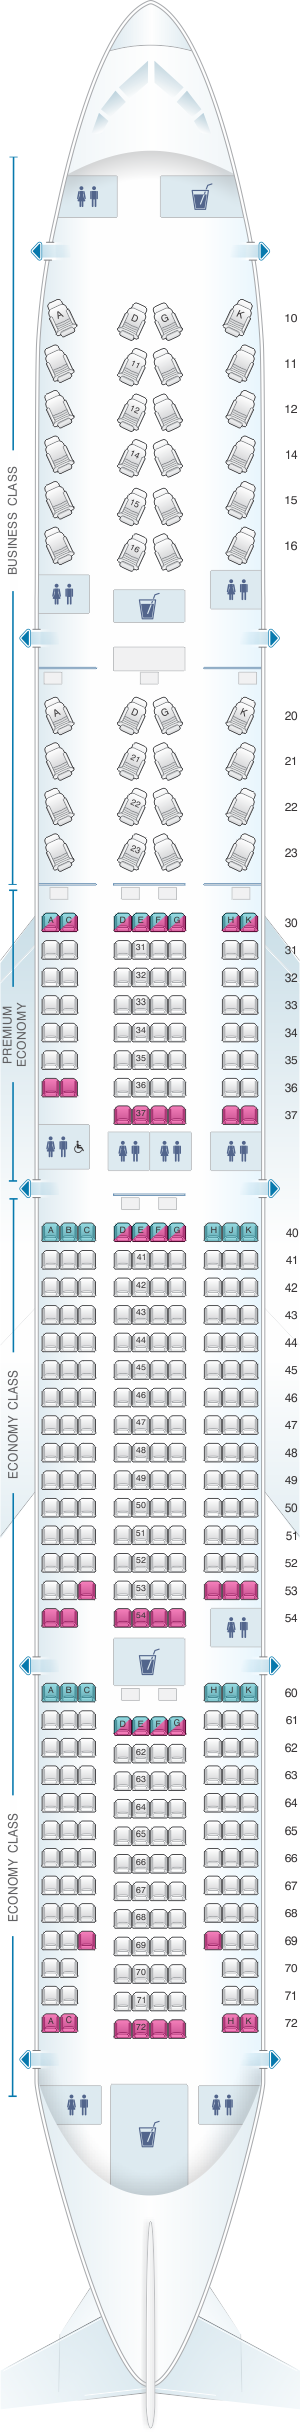 Seat map for China Airlines Boeing B777 300ER